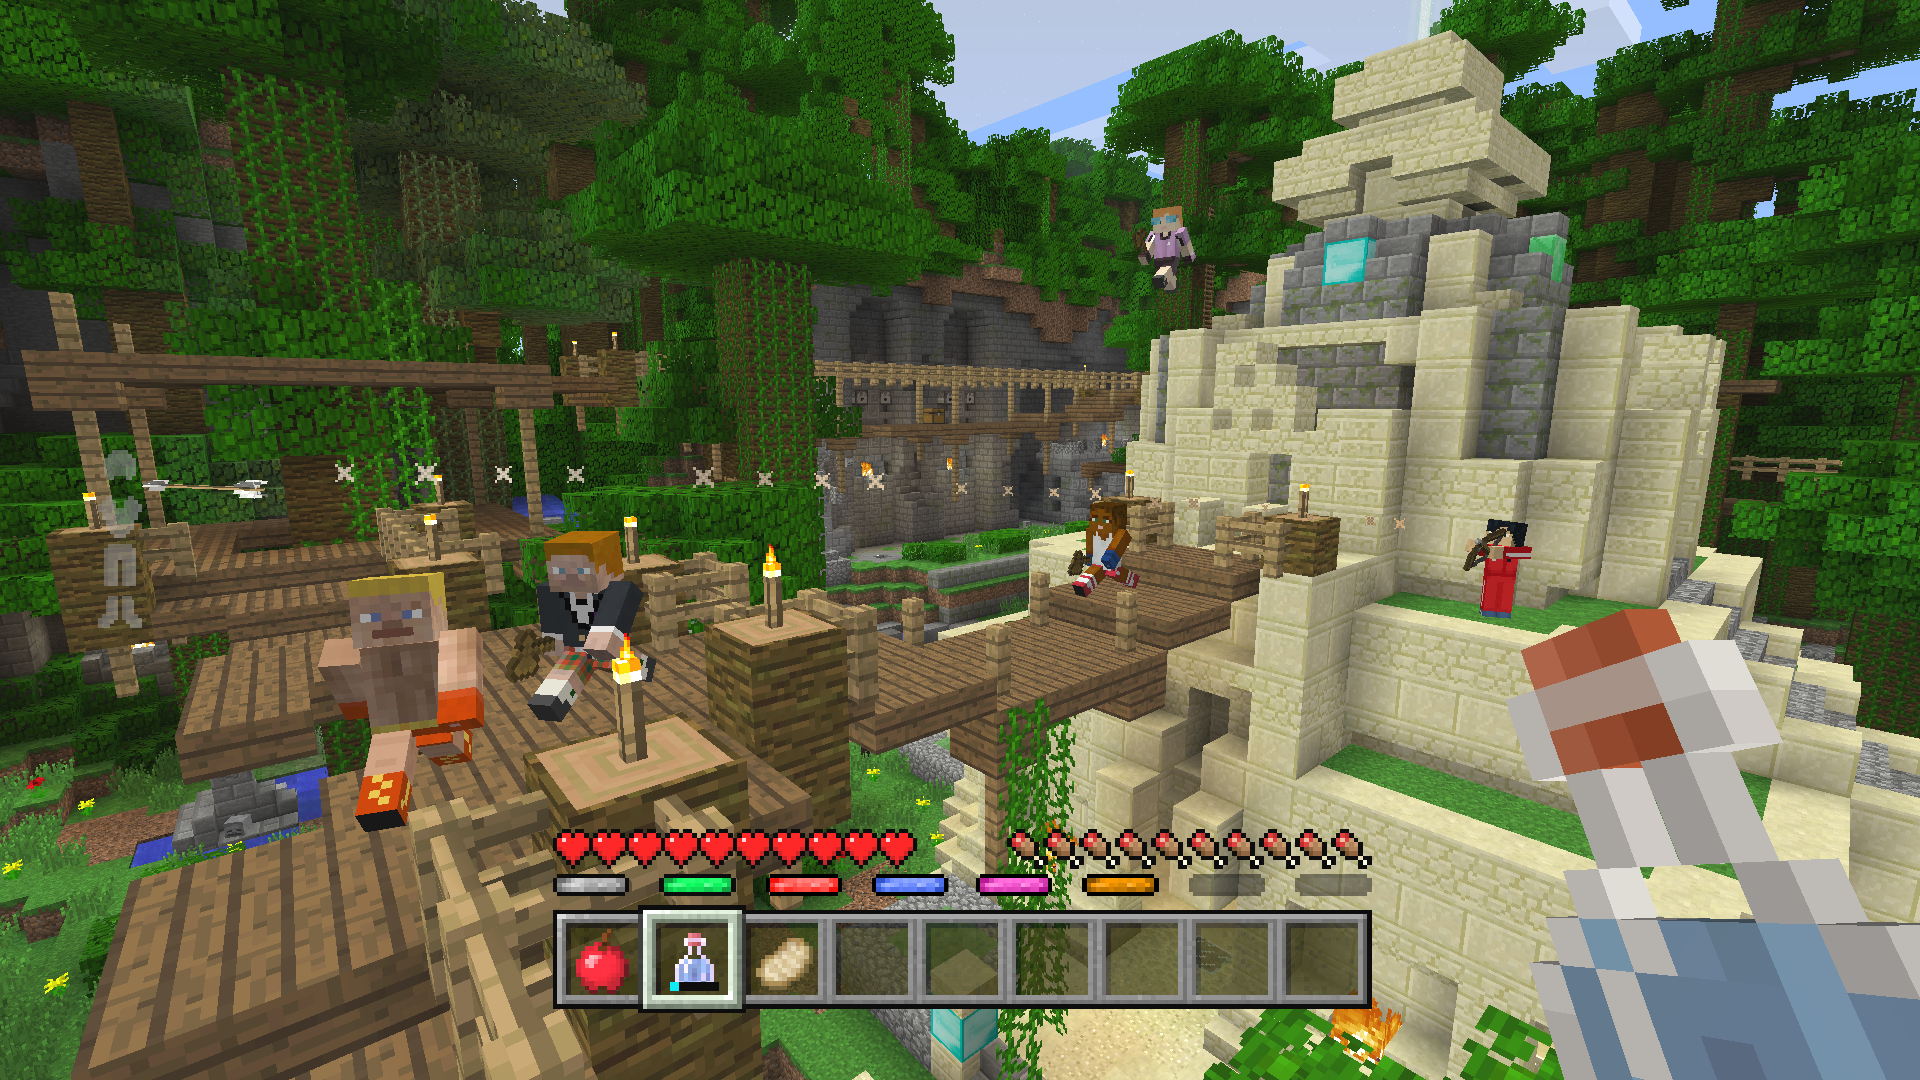 Minecraft Wii U Edition Full Change Log For The June 21st Update